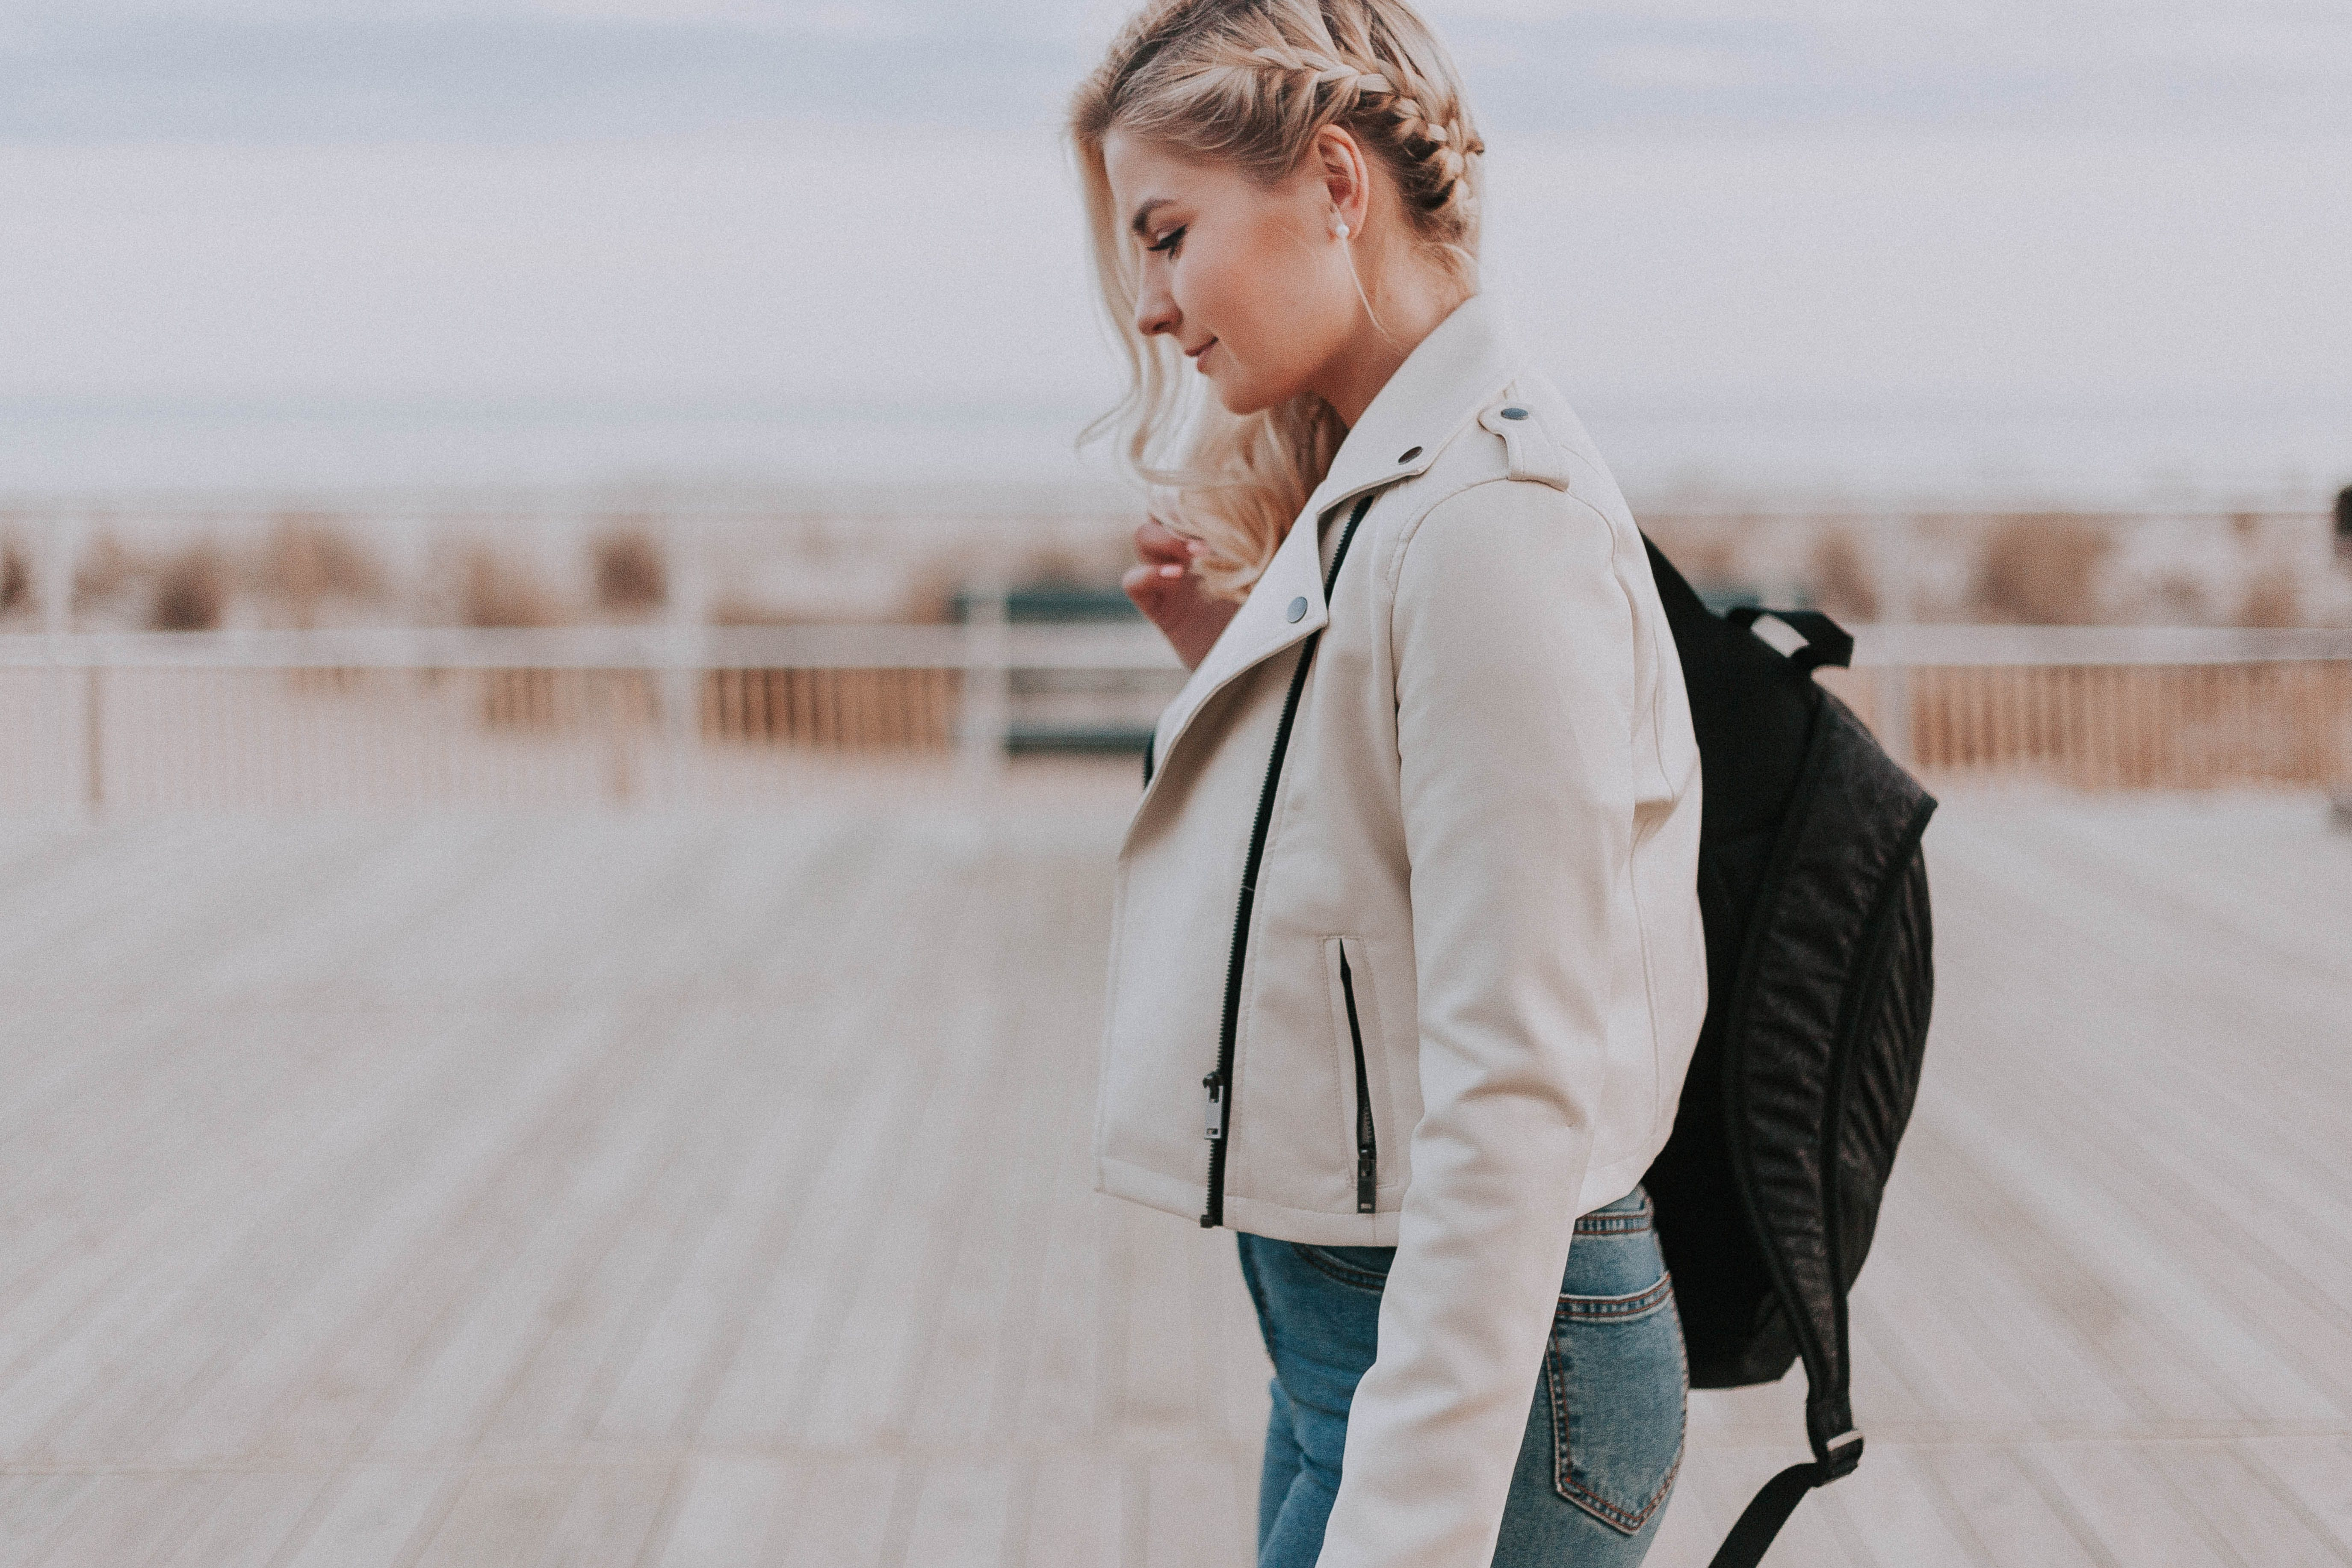 Woman in Black Zip-up Jacket With Black Backpack